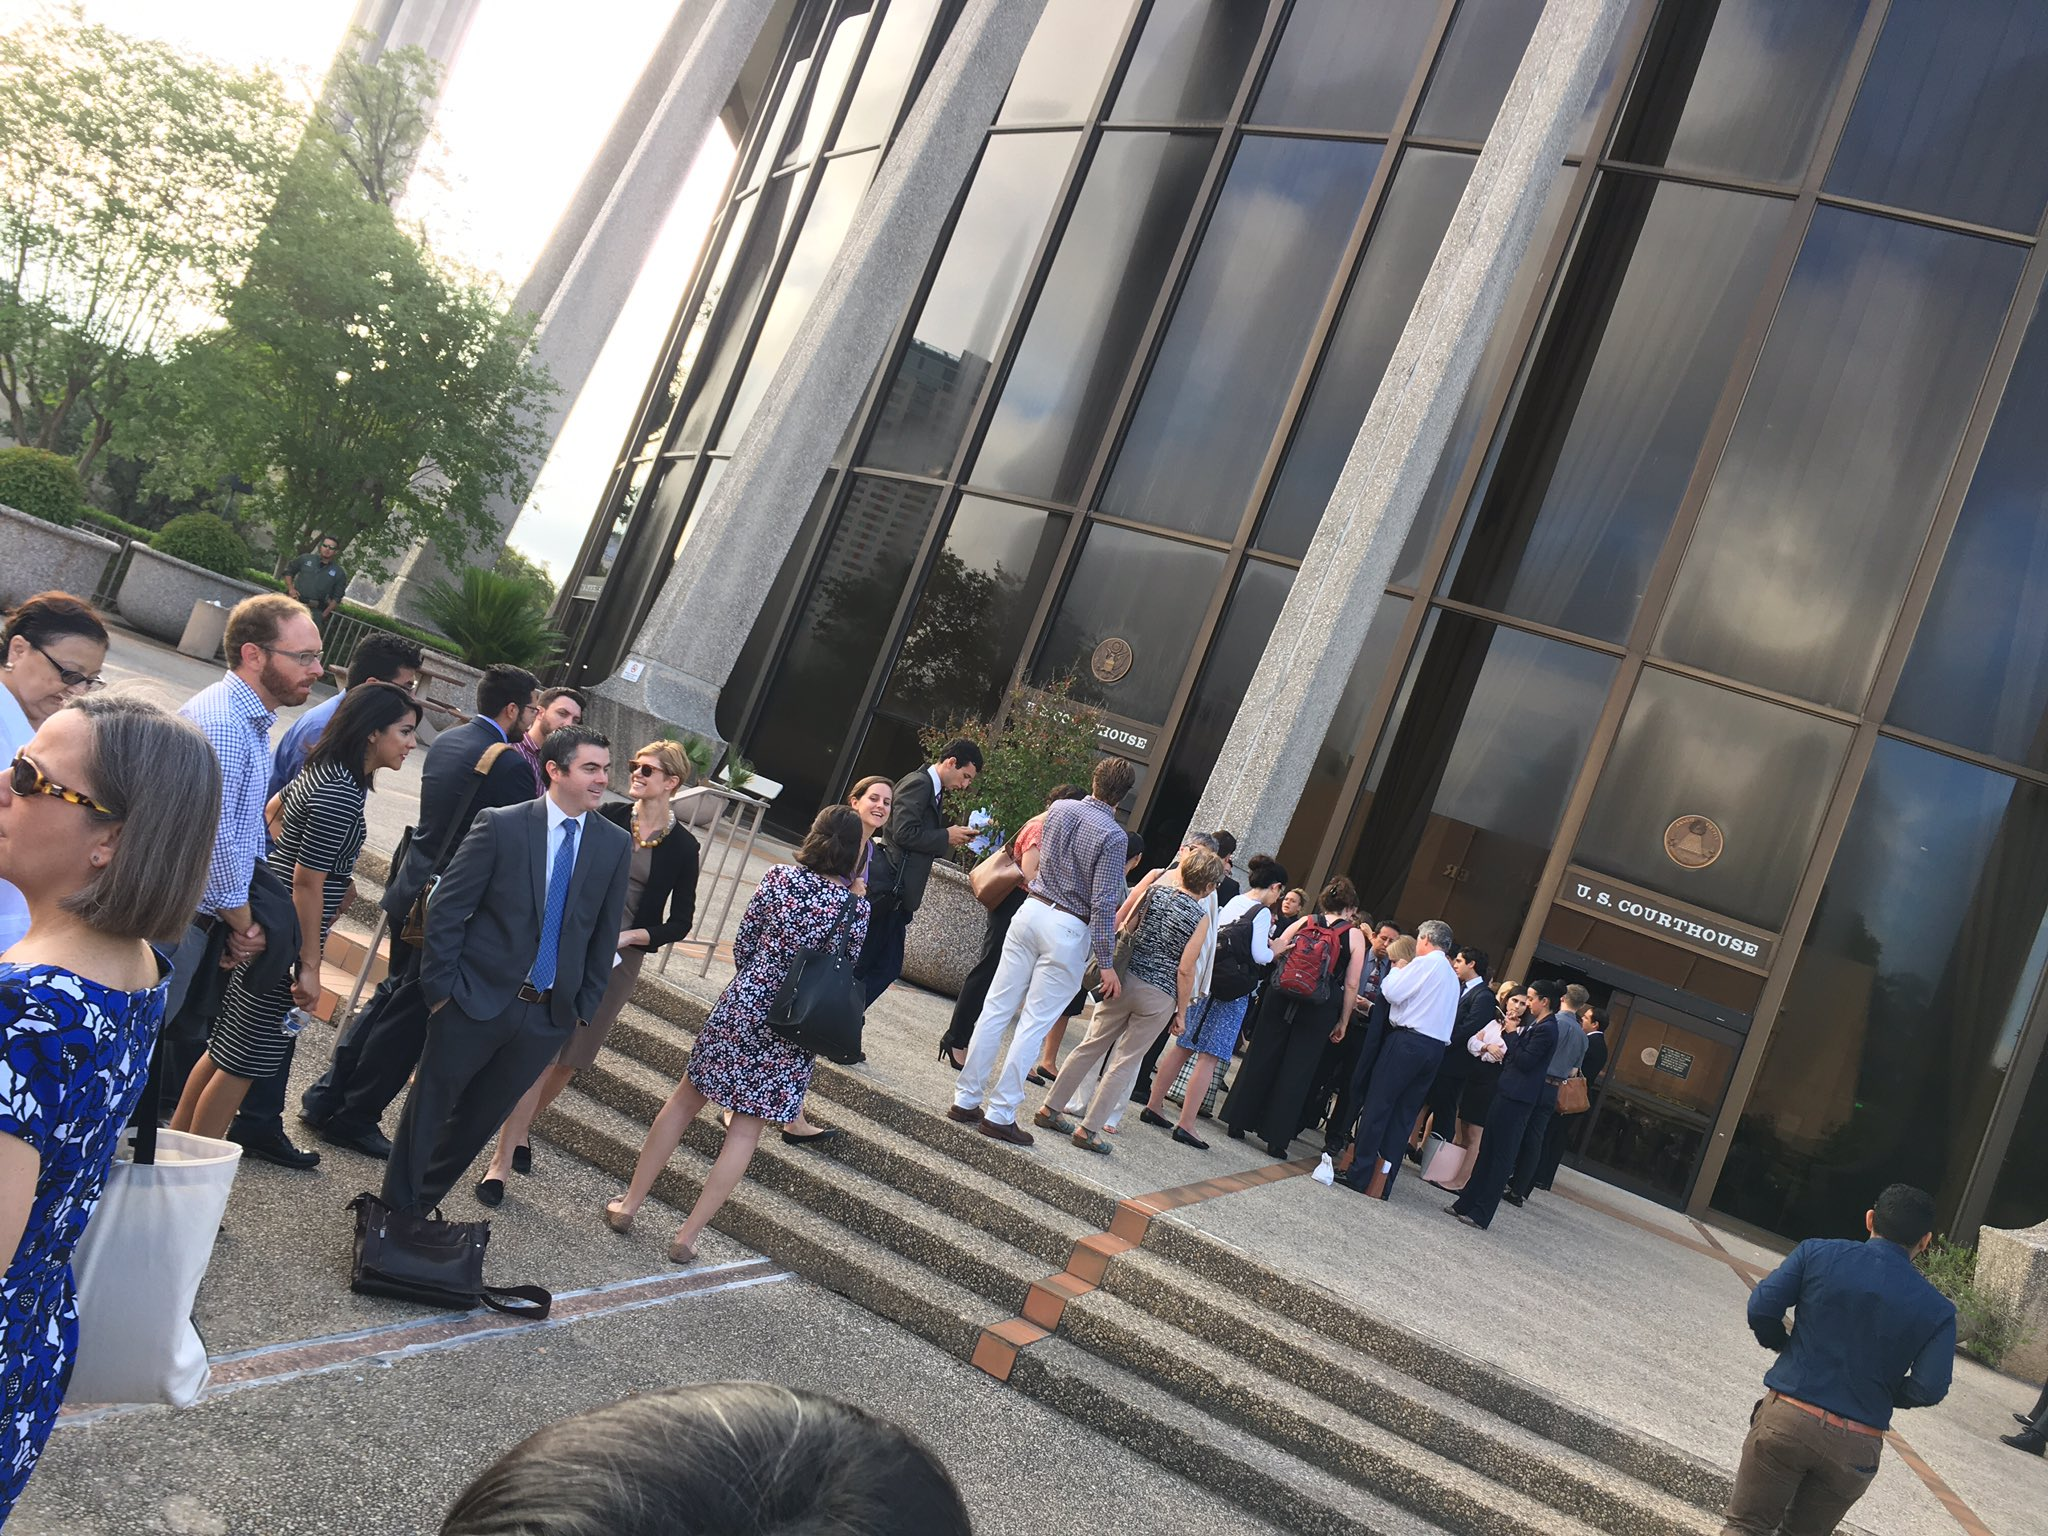 Here's the line of reporters at attorneys/lawmakers waiting to get into the #SB4 hearing in San Antonio #txlege https://t.co/0RheoEXnRD